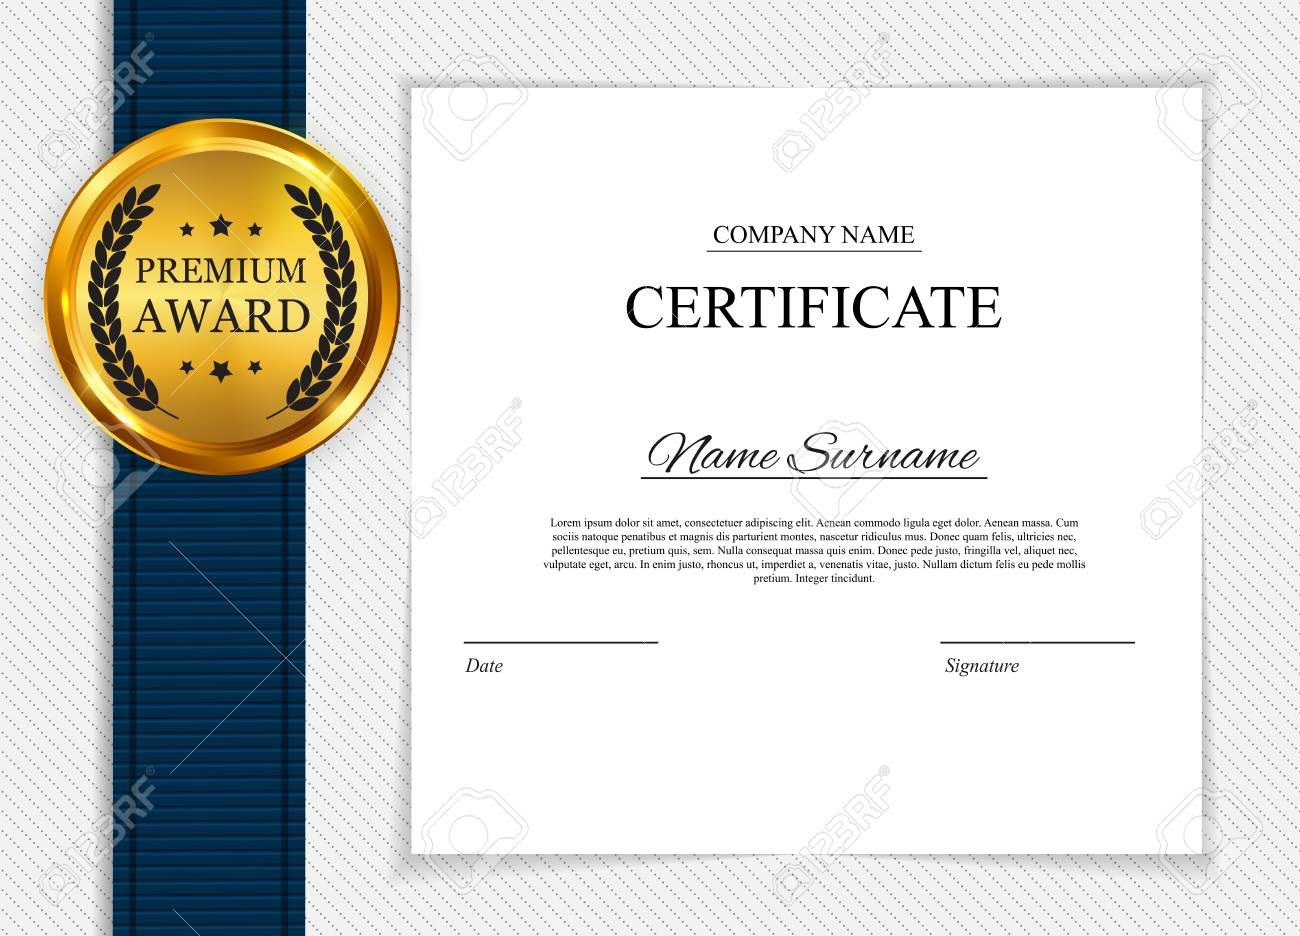 003 Archaicawful Blank Award Certificate Template High Resolution  Printable Math Editable FreeFull